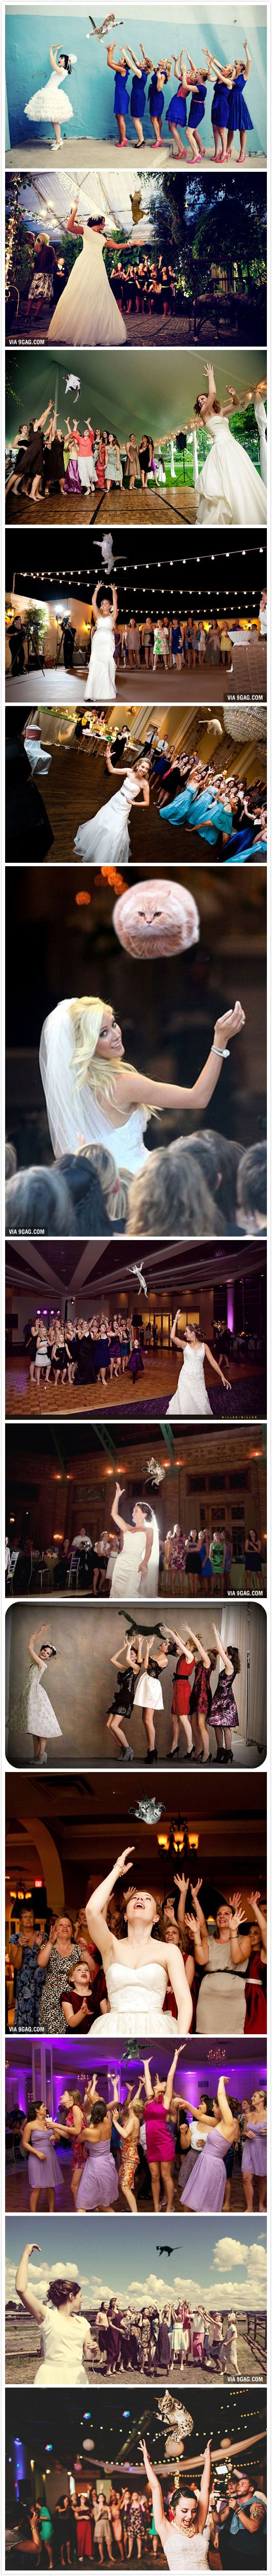 """""""Brides Throwing Cats"""", because bouquets are sooo yesterday hahaah I will do it for sure :P"""